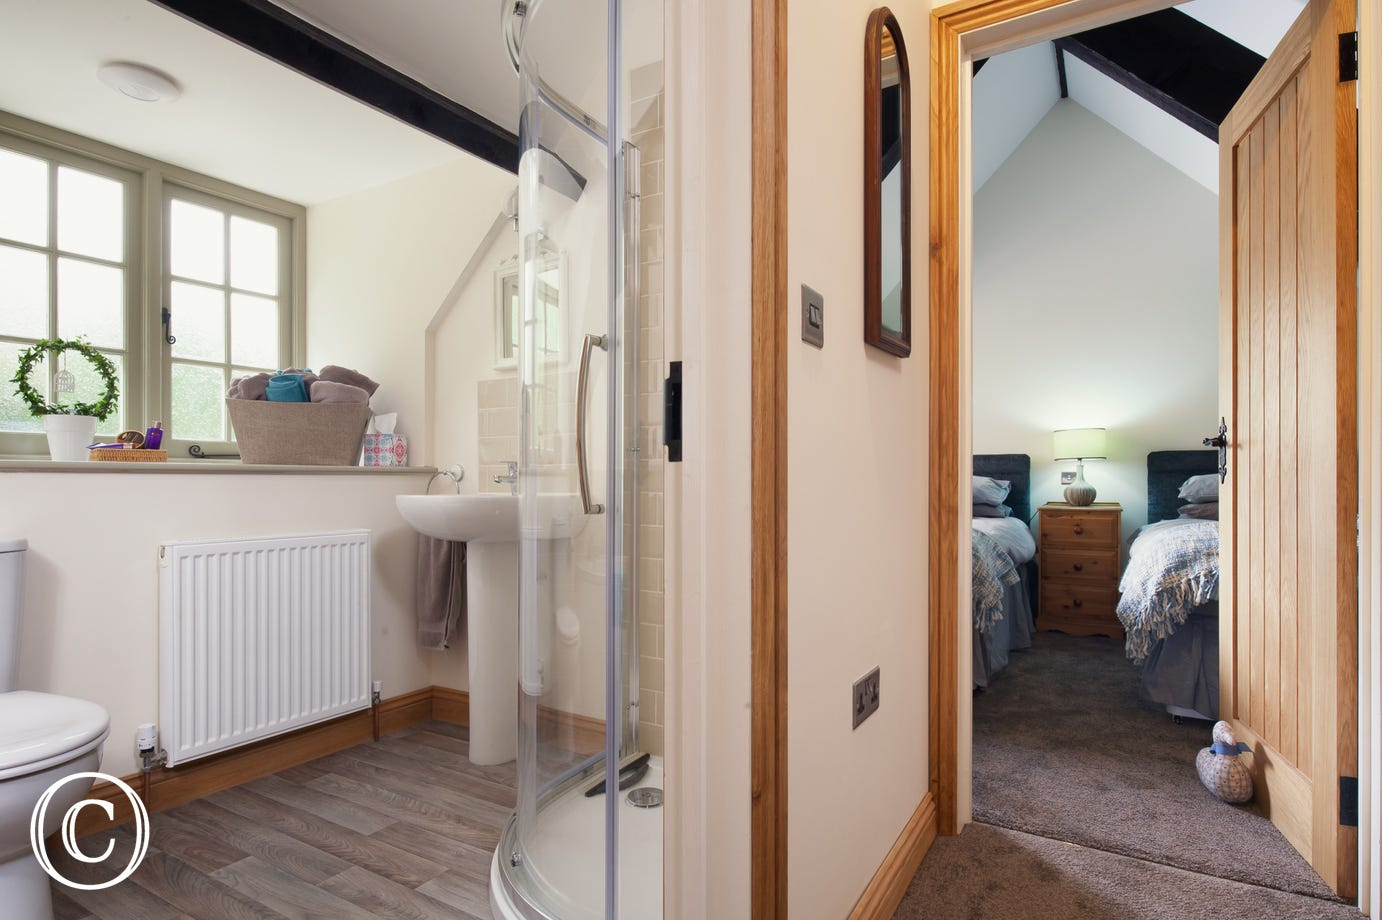 Spacious Cottage with Stylish Bathroom and Two Bedrooms